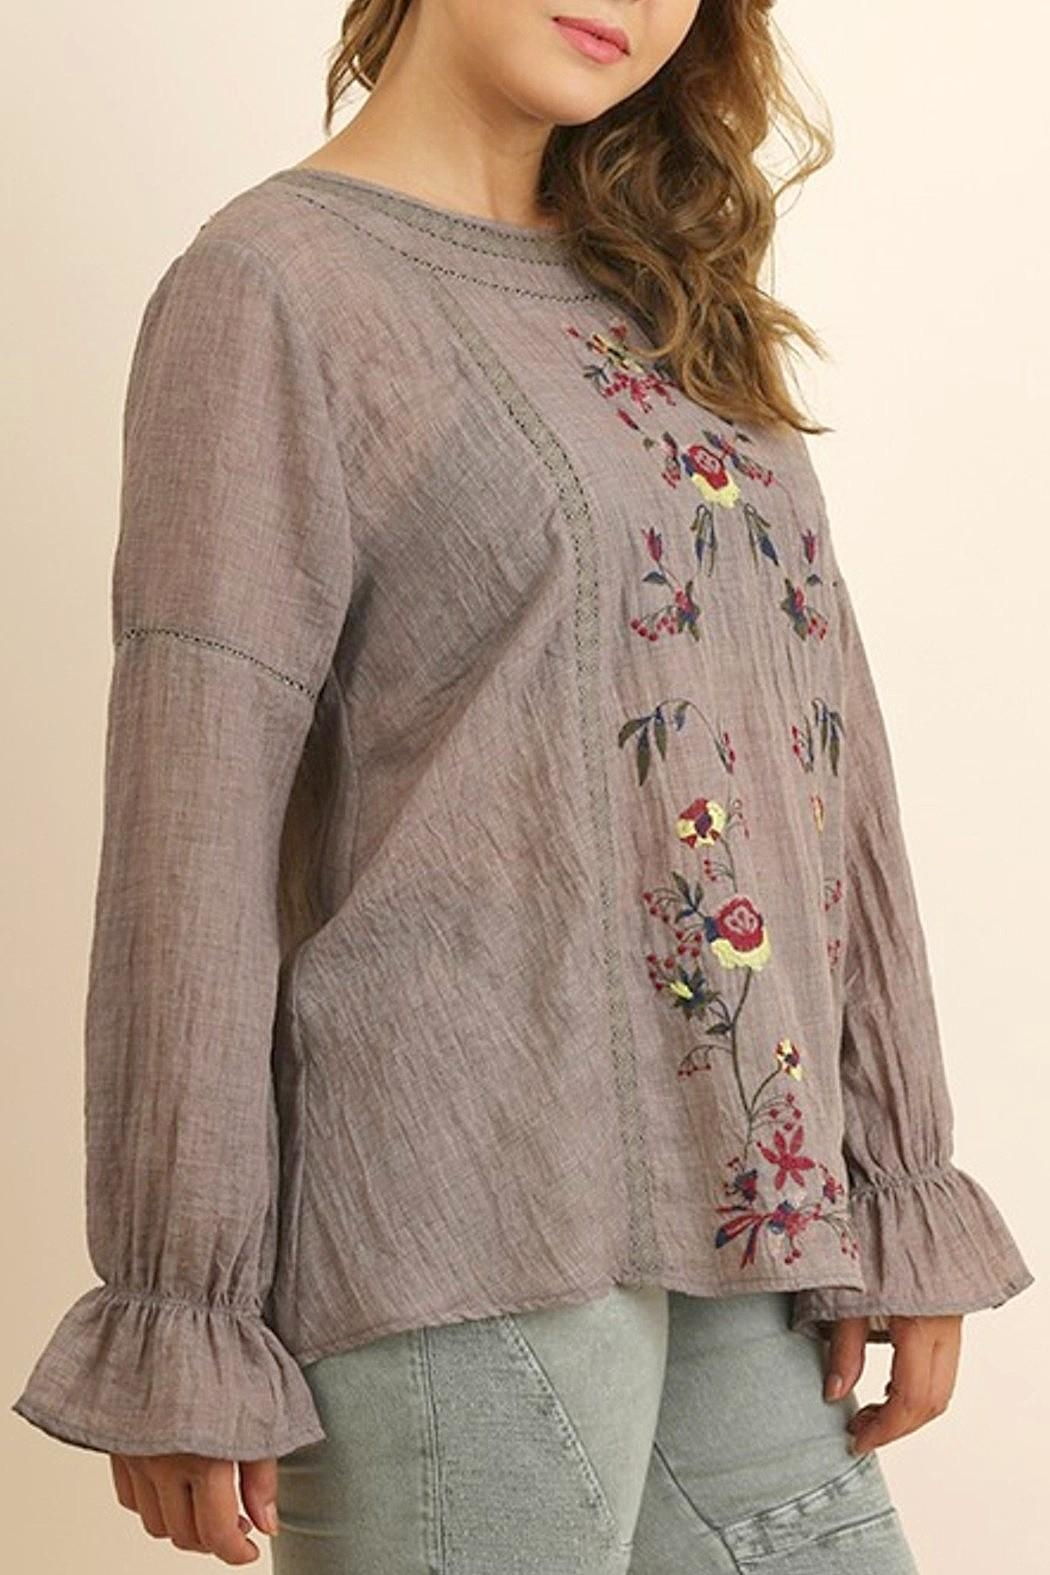 UMG PLUS Floral Embroidered Top - Main Image